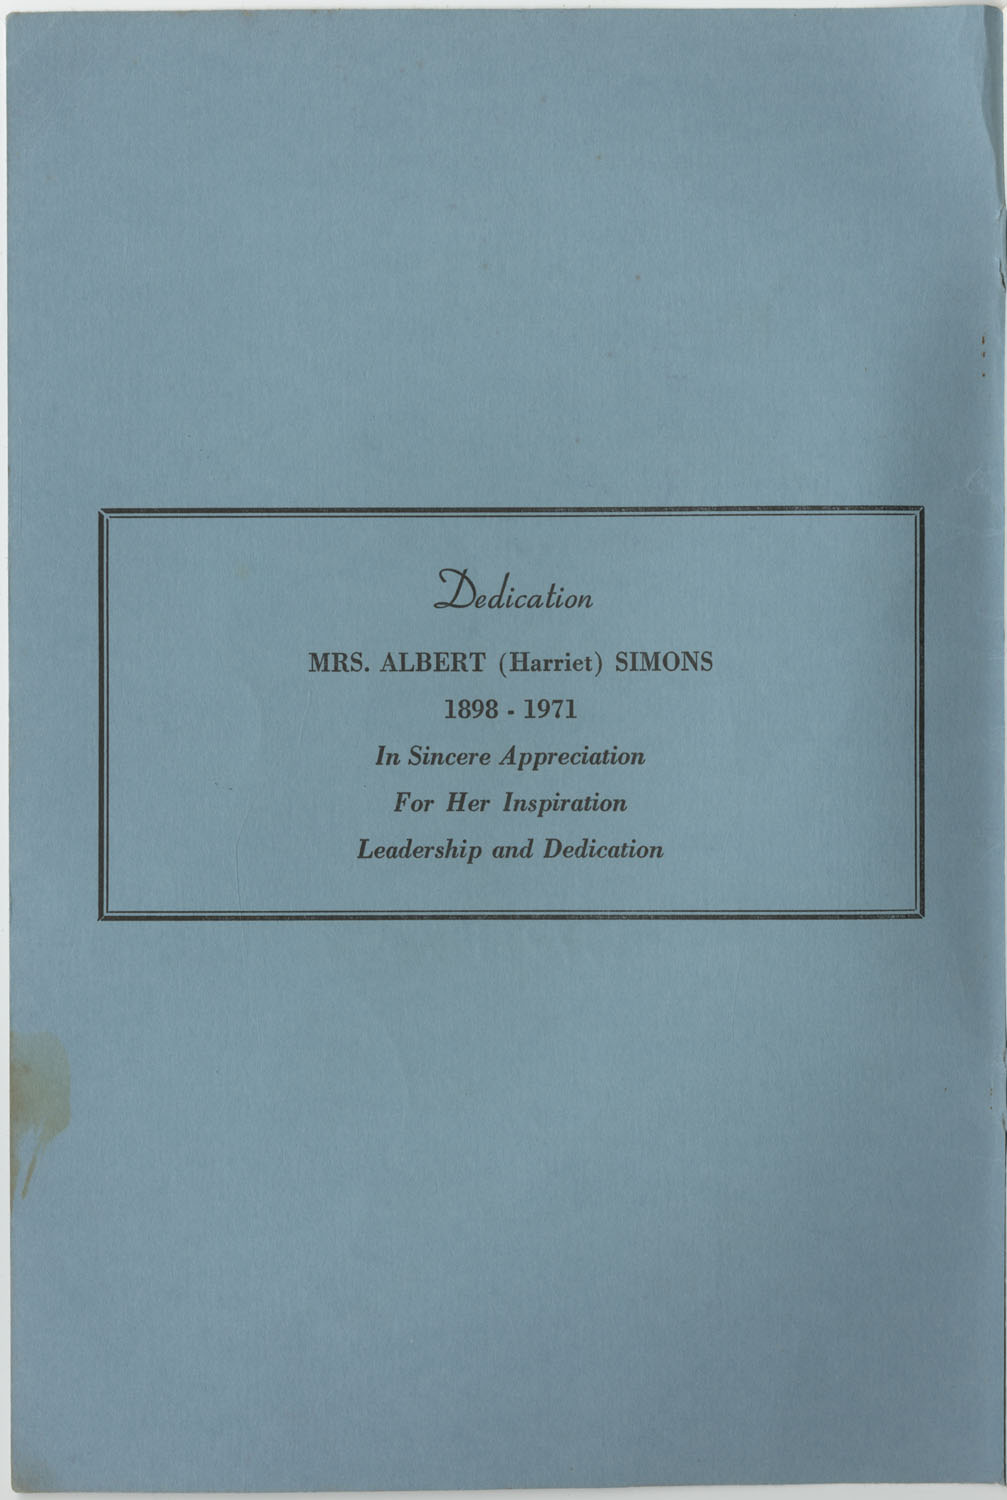 Directory of Public Officials, 1972-1973, Front Cover Interior